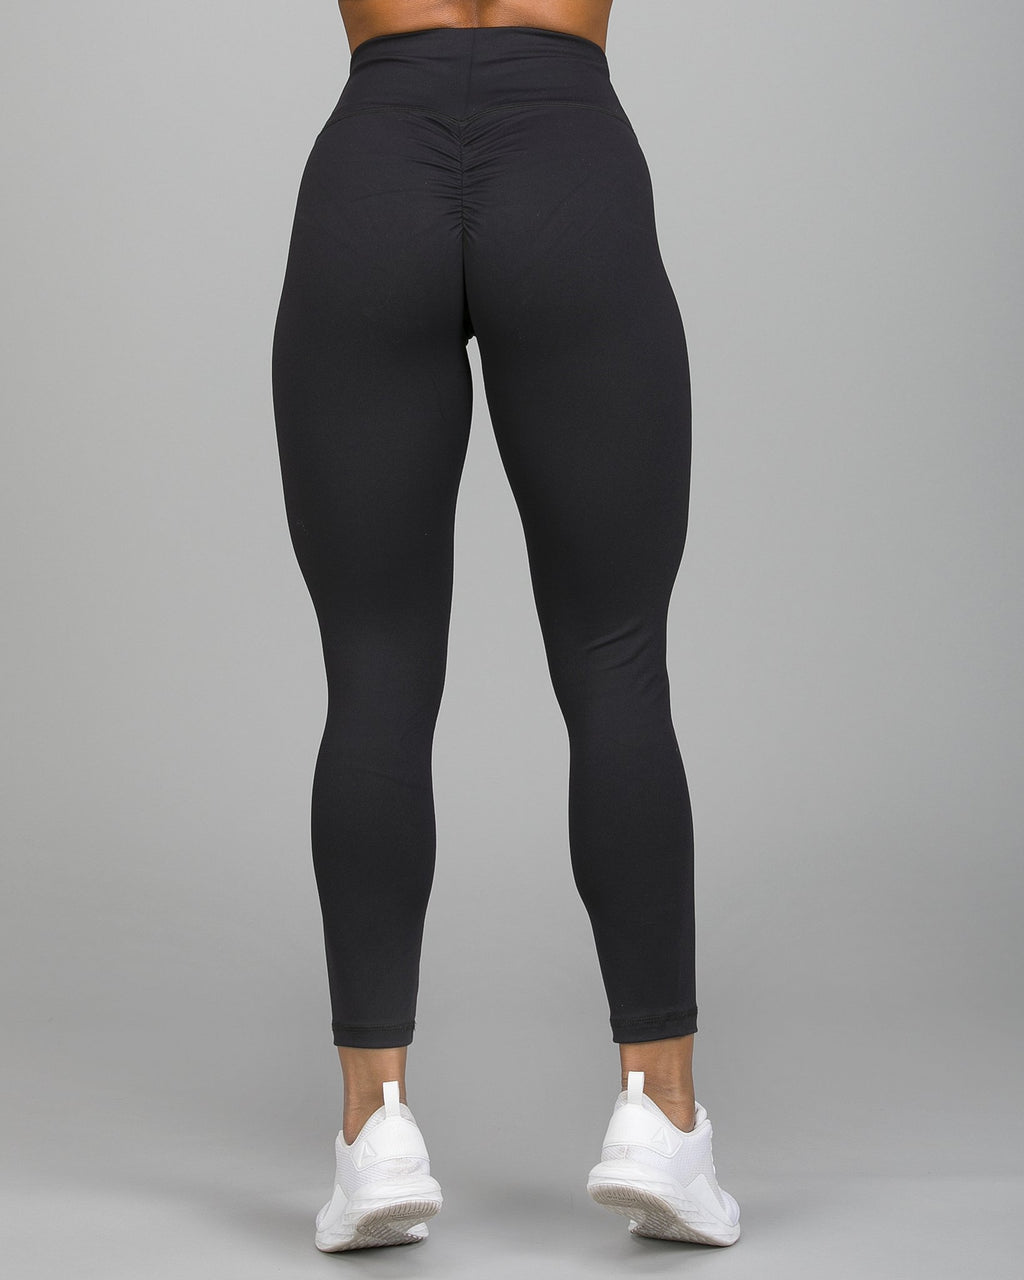 Scrunch Leggings (Limit 1 item per customer)